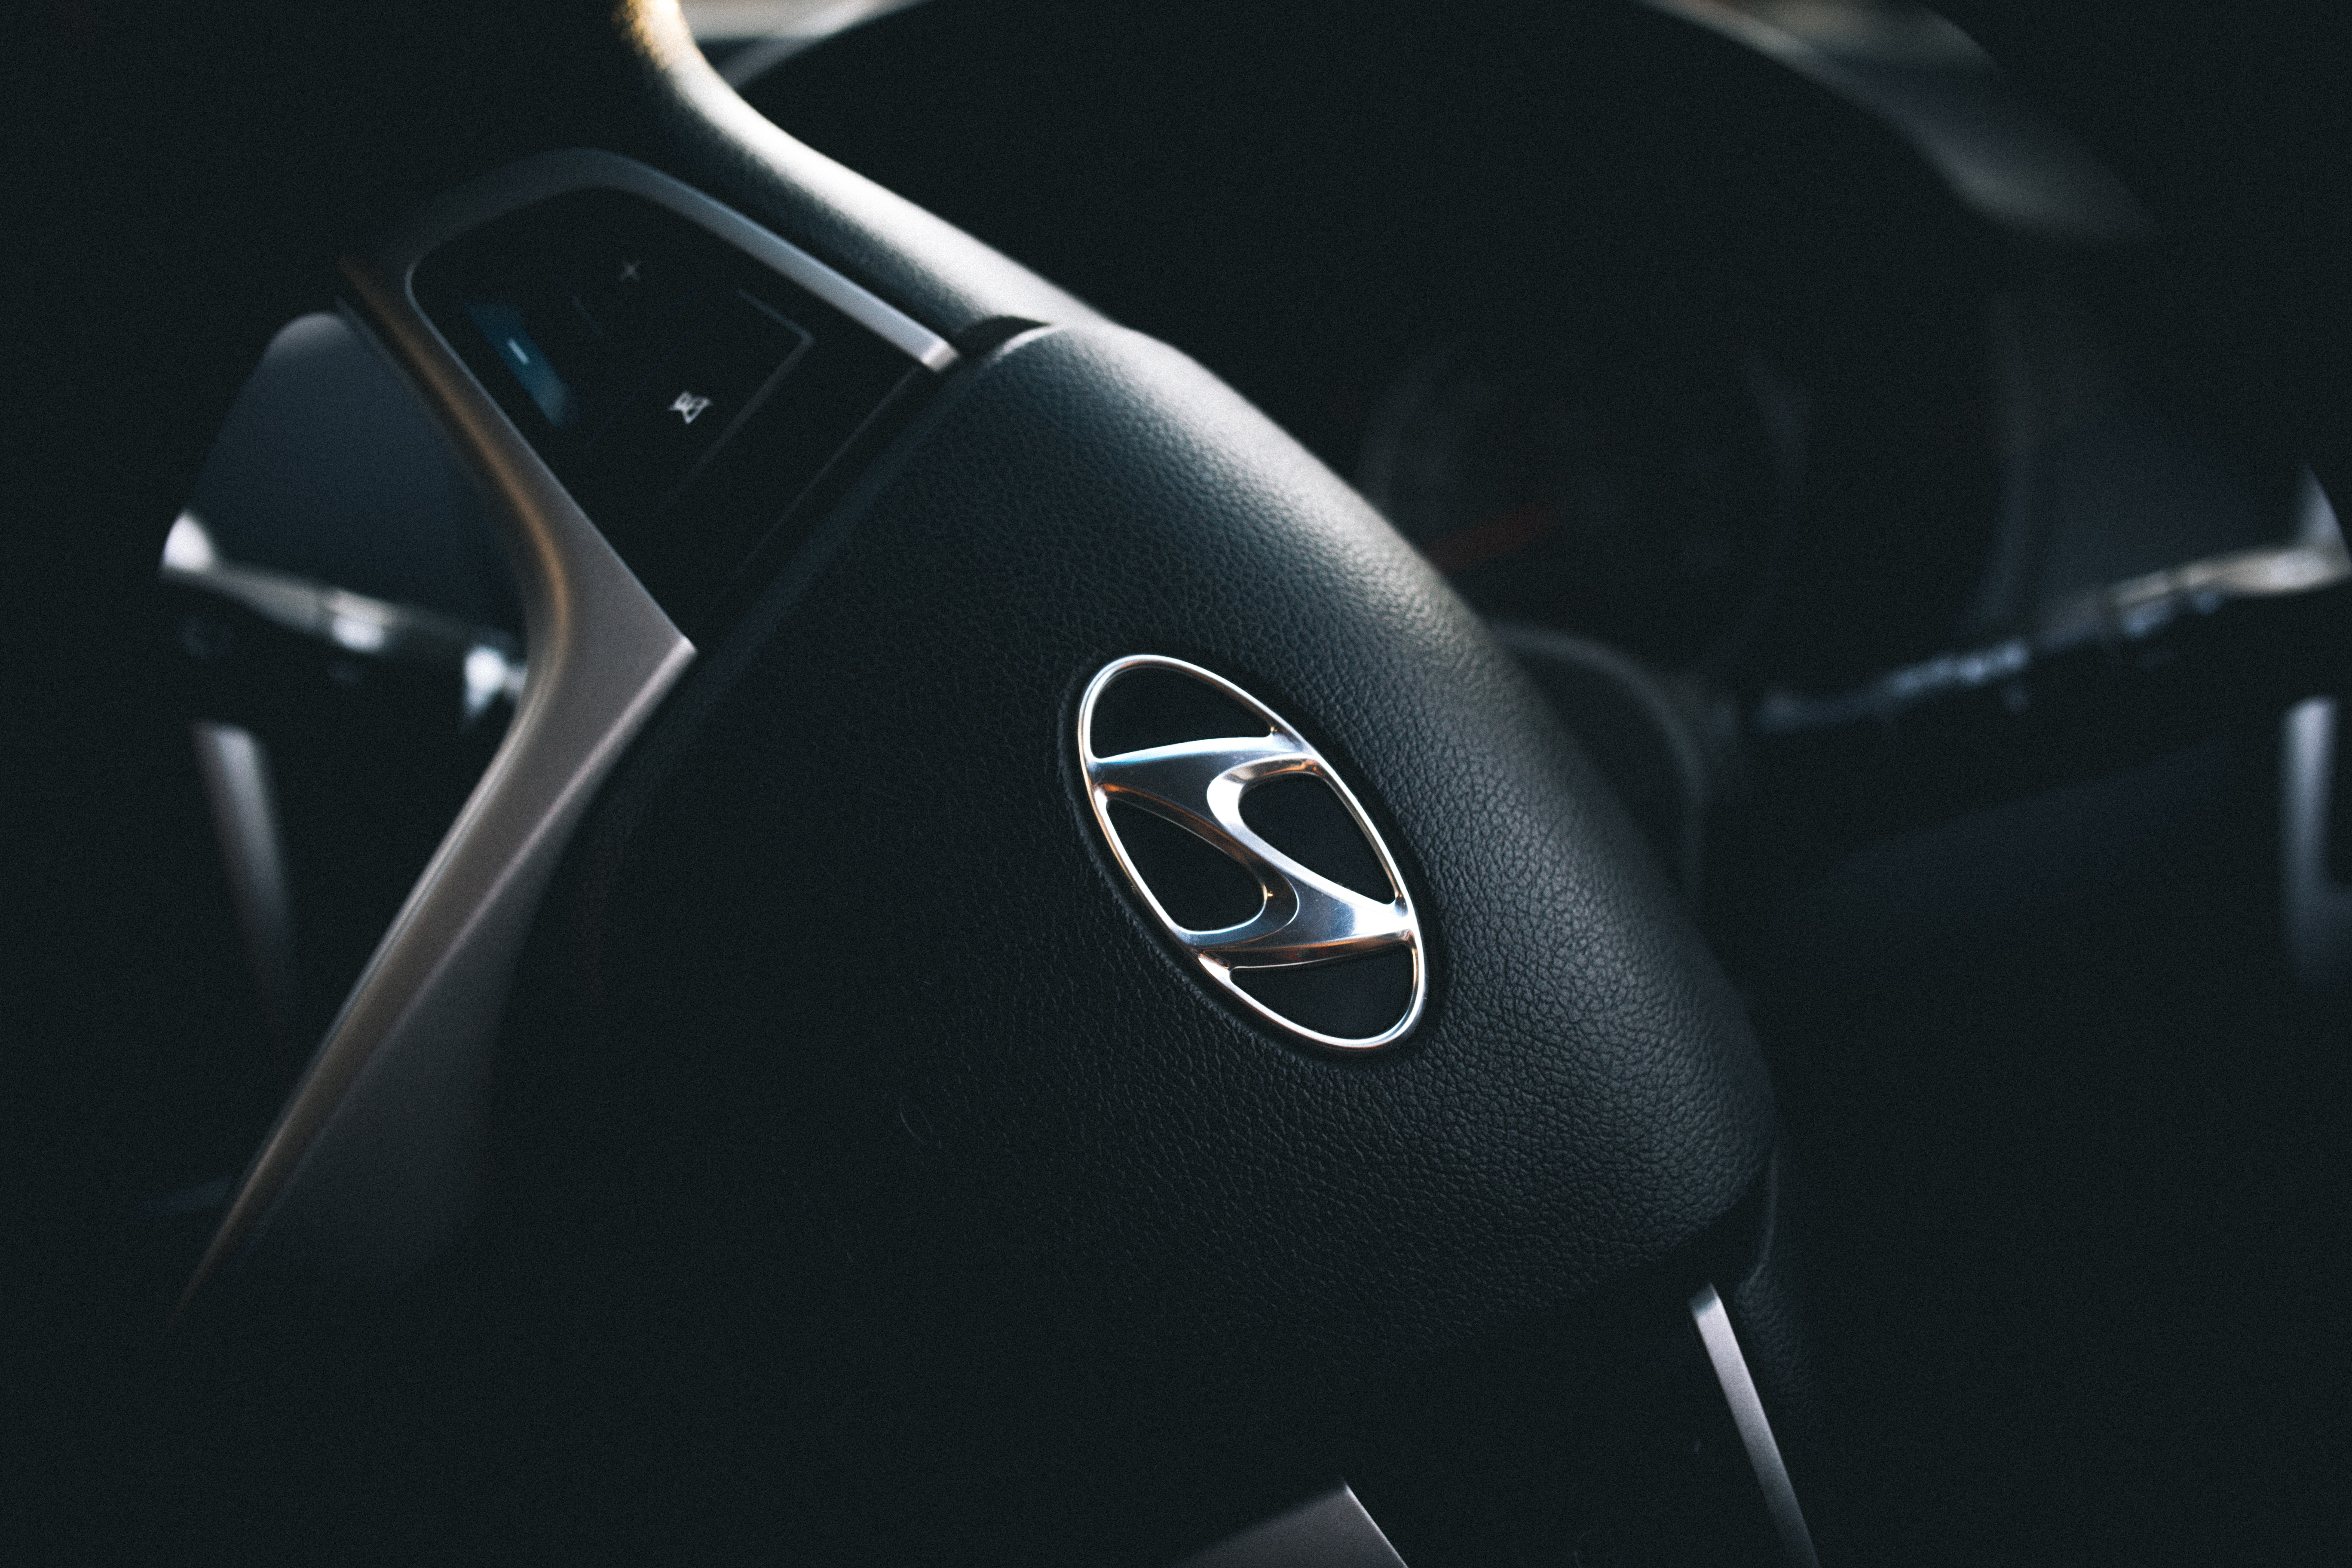 A steering wheel with the Hyundai logo